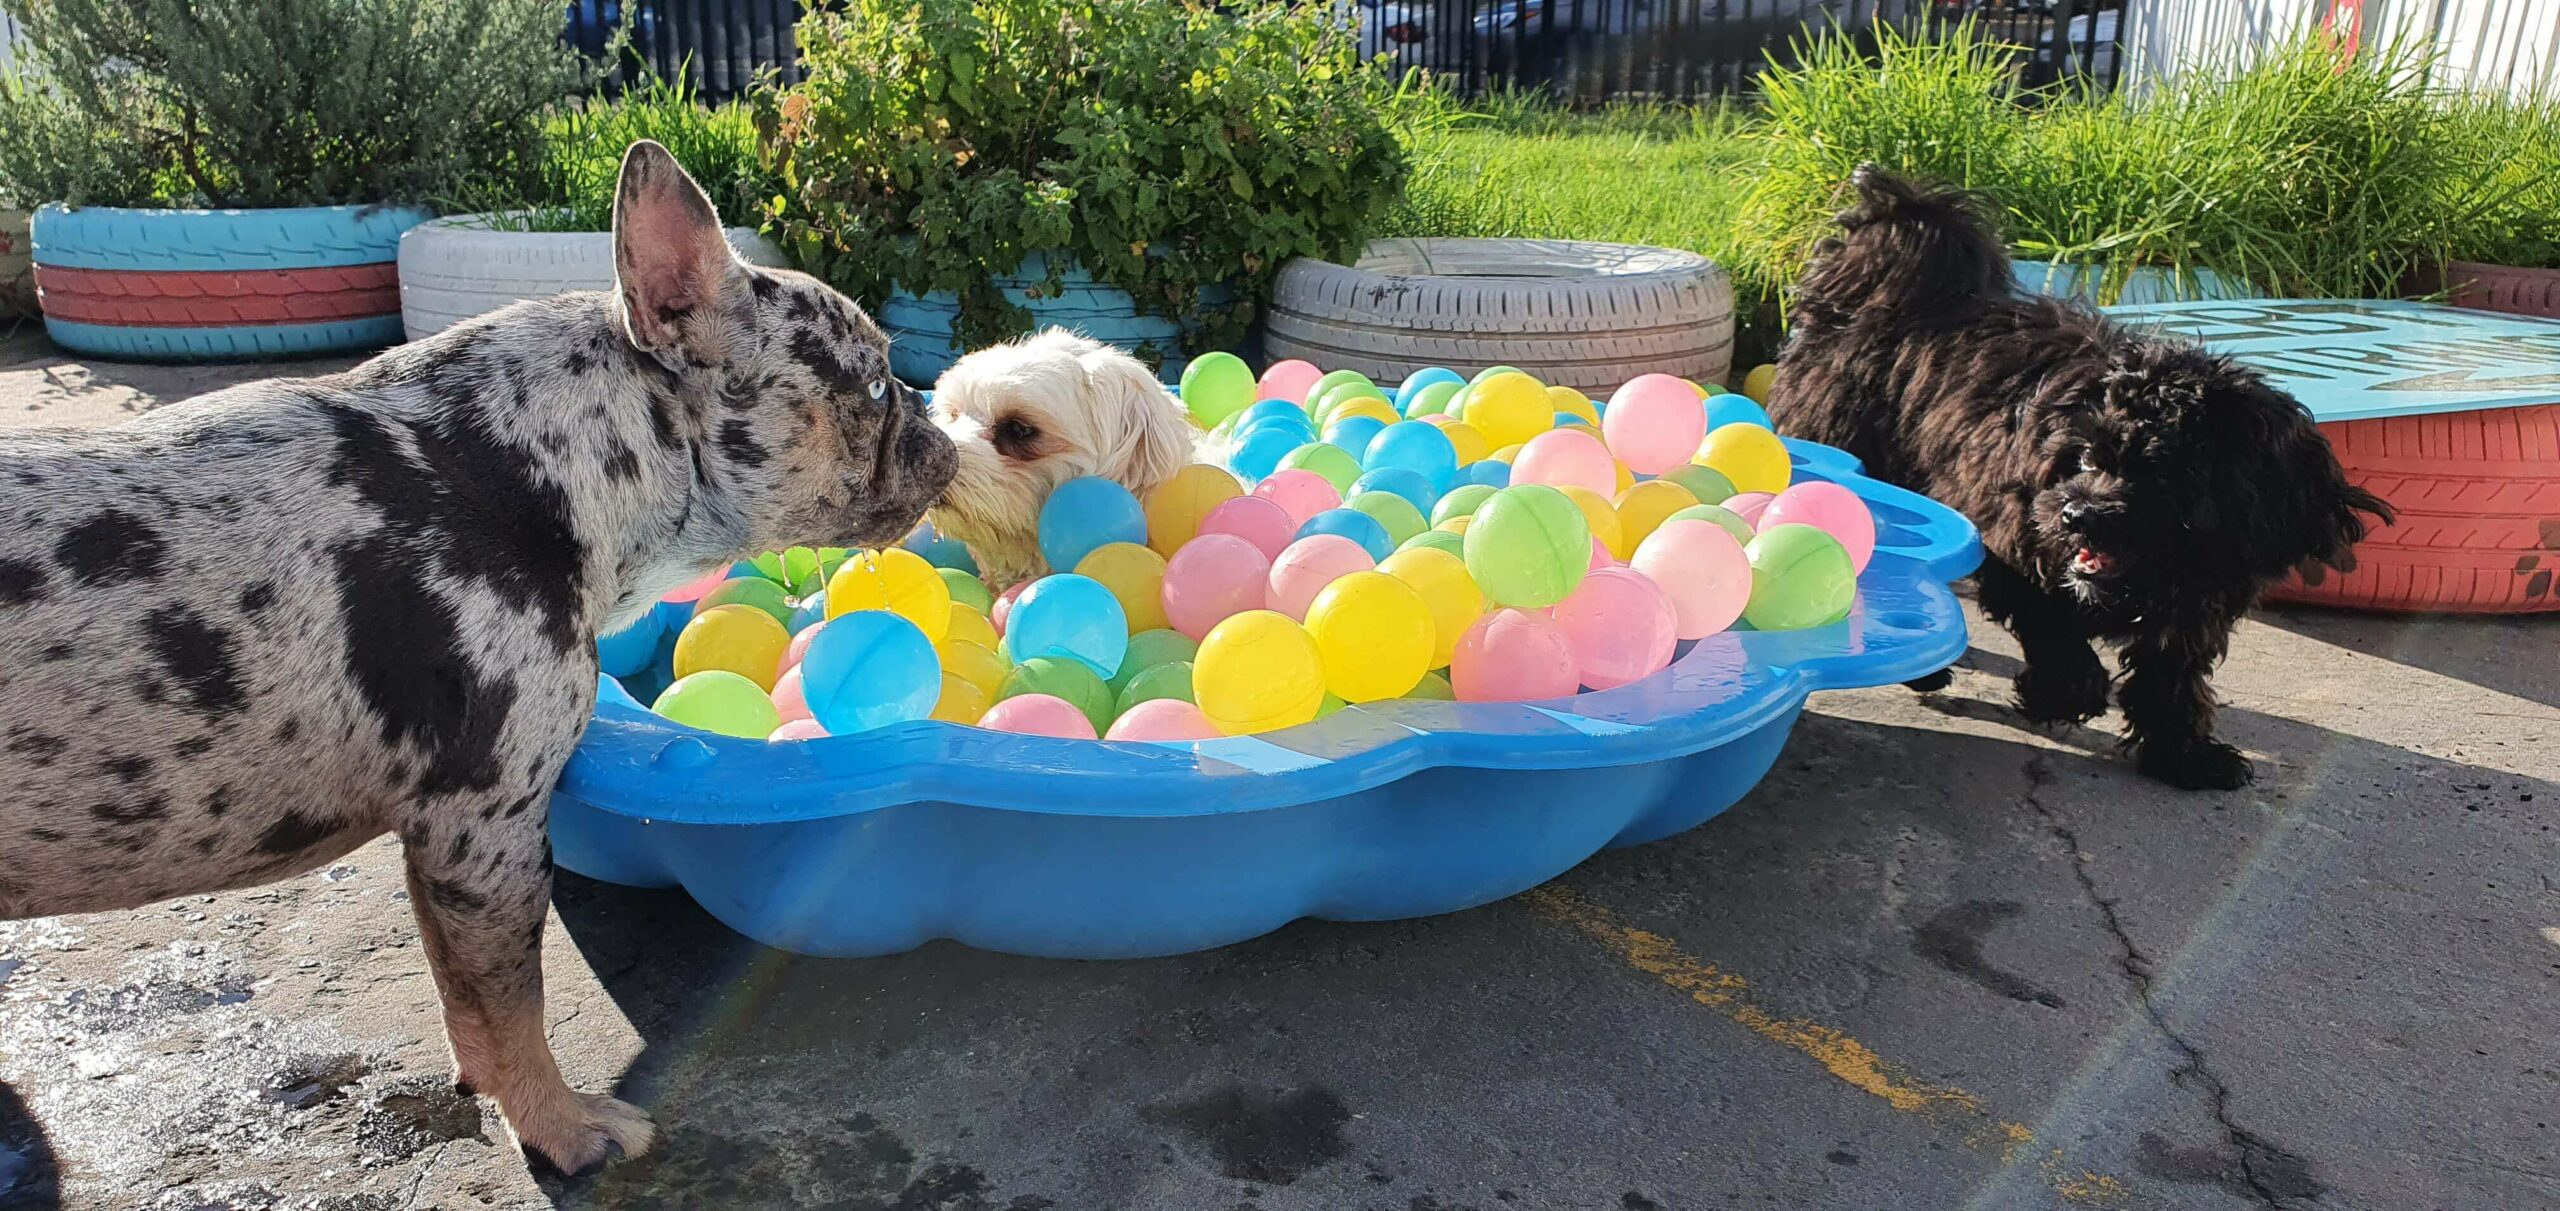 Little dogs playing in shell-pool with colourful balls